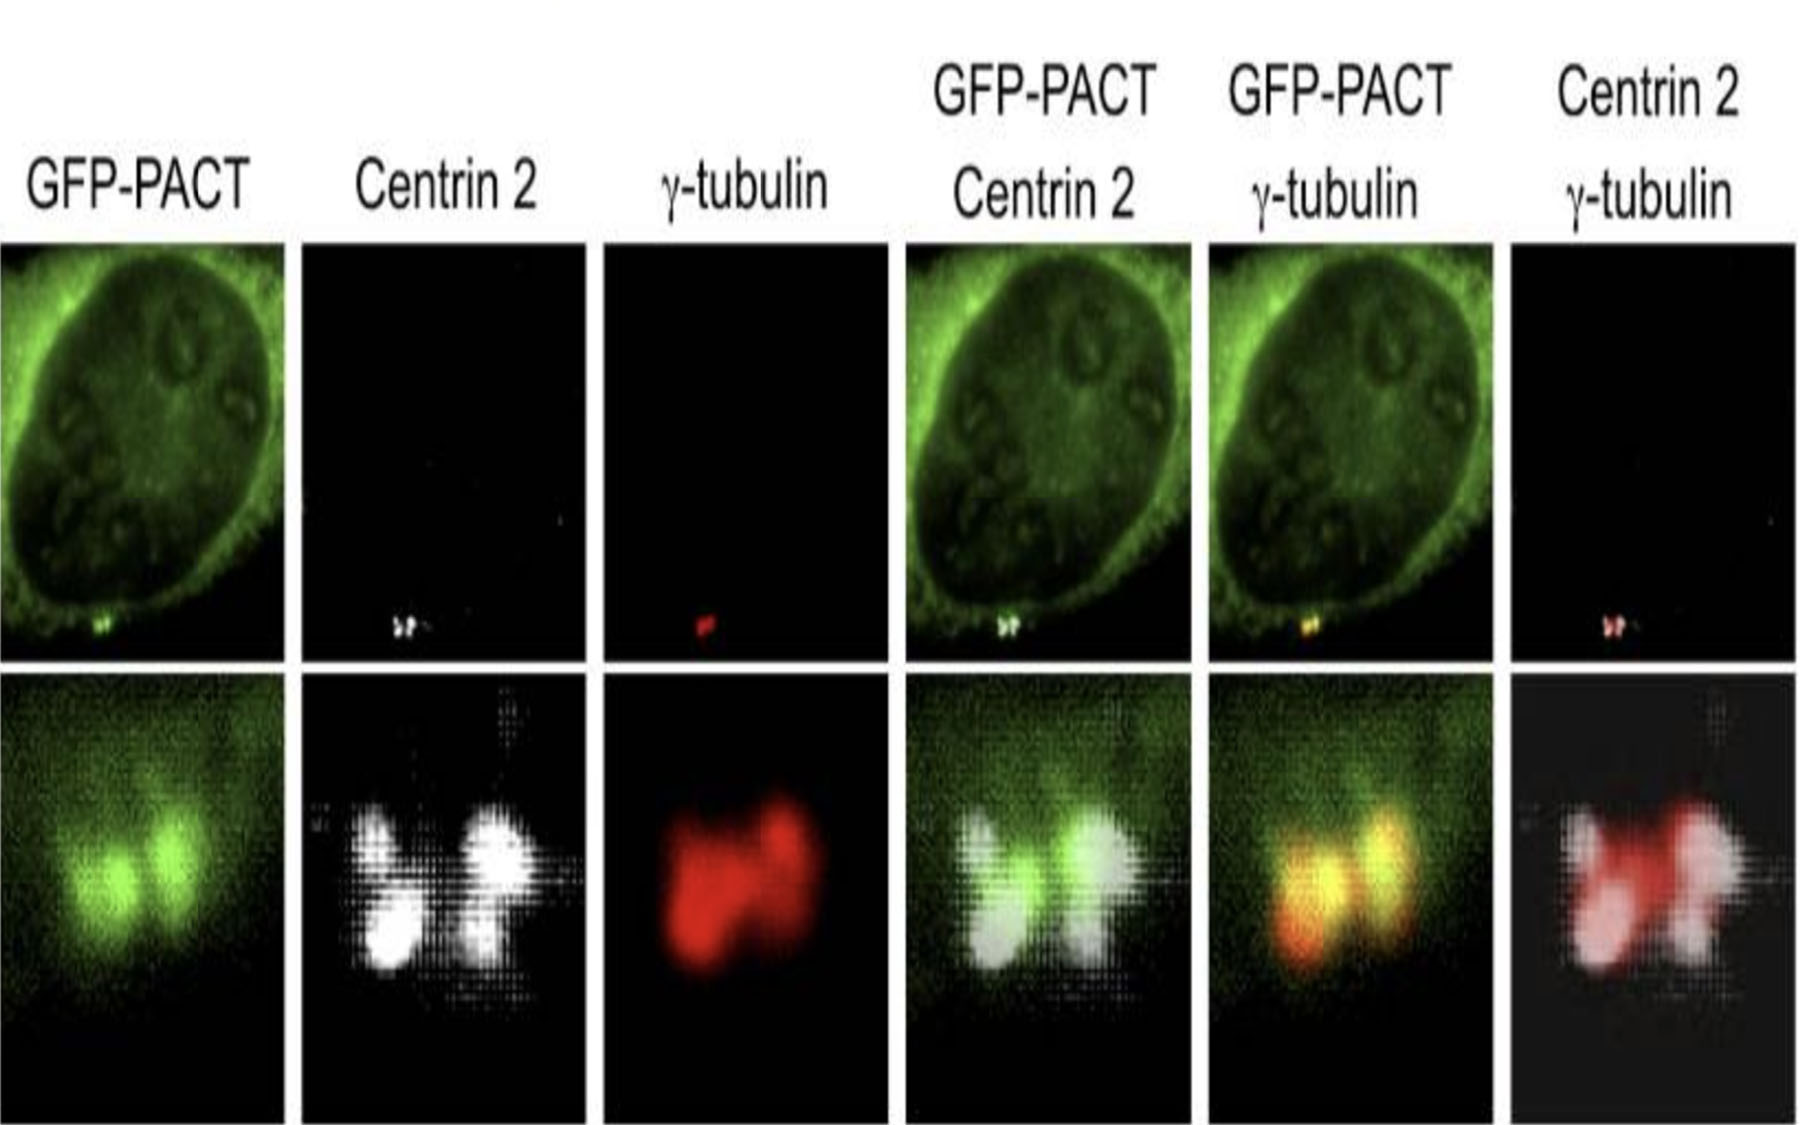 GFP-PACT transfected U2OS cells